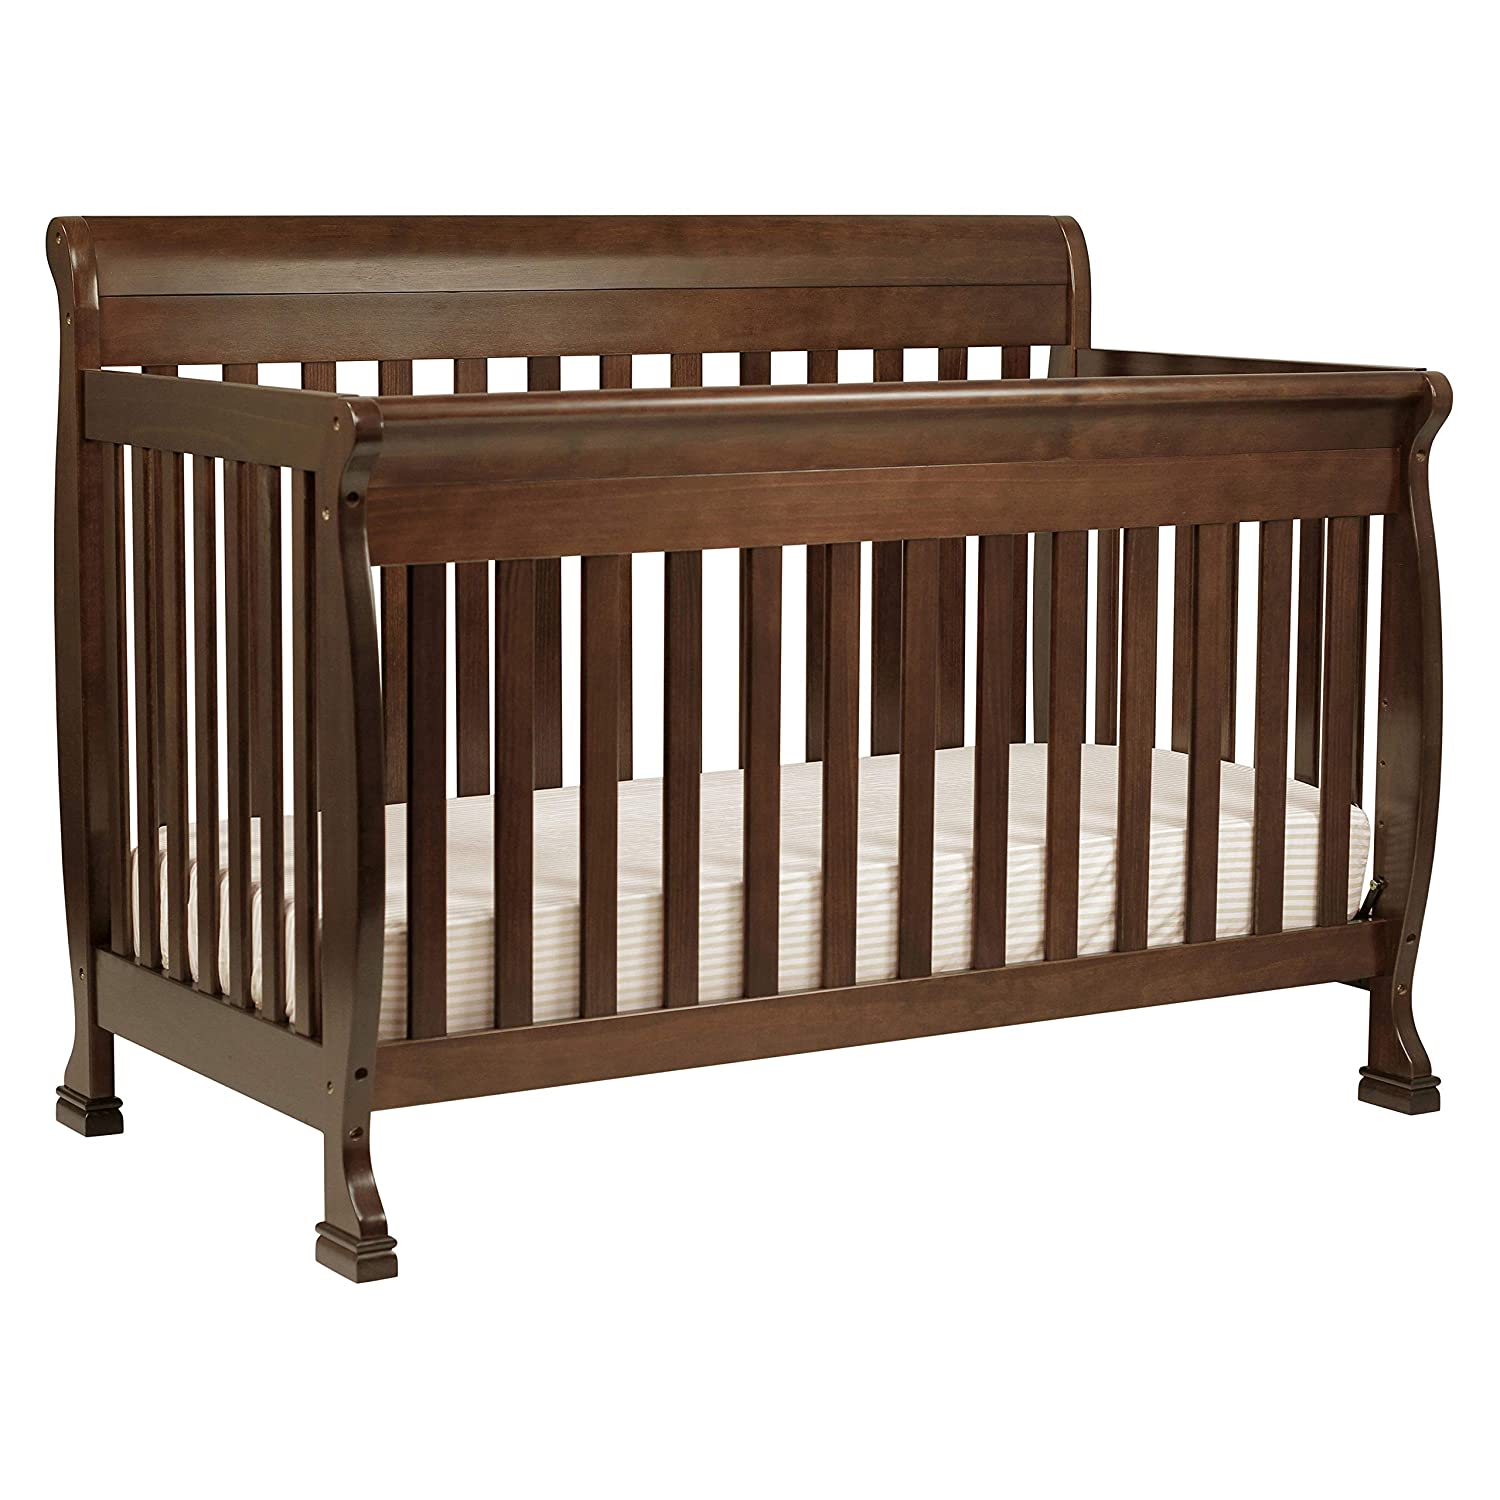 Safest Best Baby Cribs 2021 Reviews: Buyer's Guide